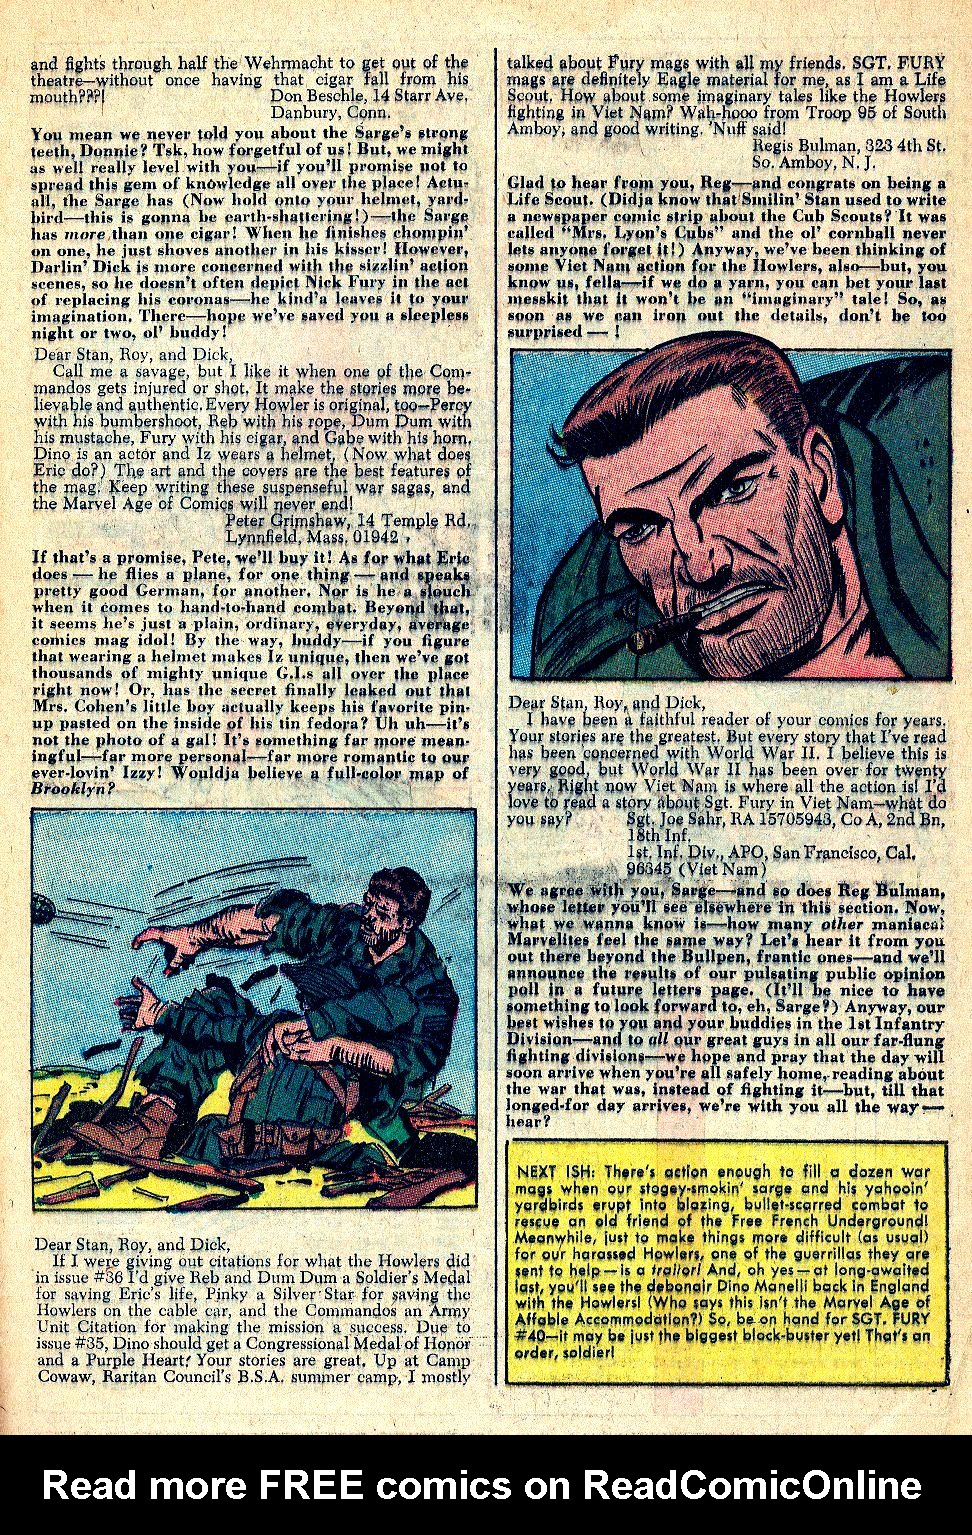 Read online Sgt. Fury comic -  Issue #39 - 33